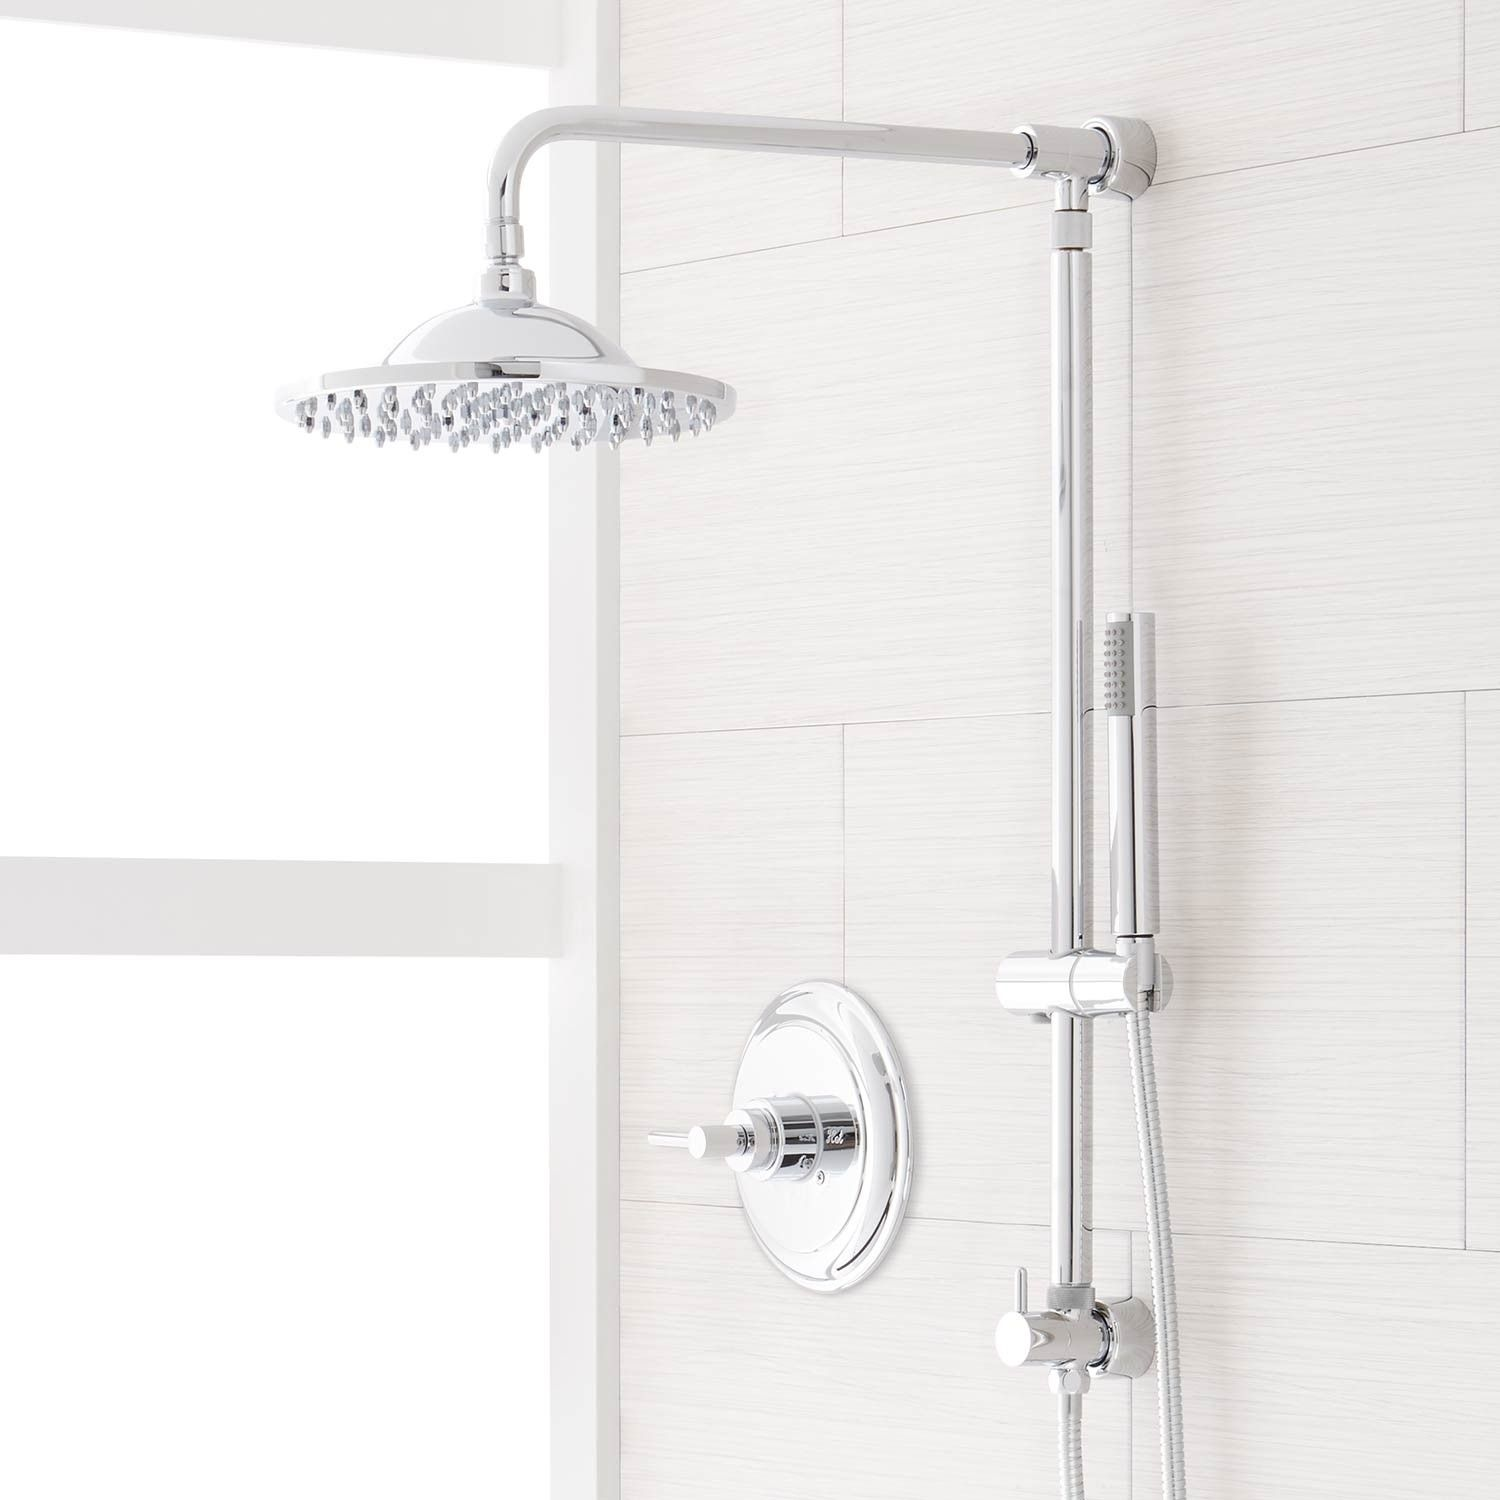 Bostonian Rainfall Nozzle Shower System Hand Shower Mixing